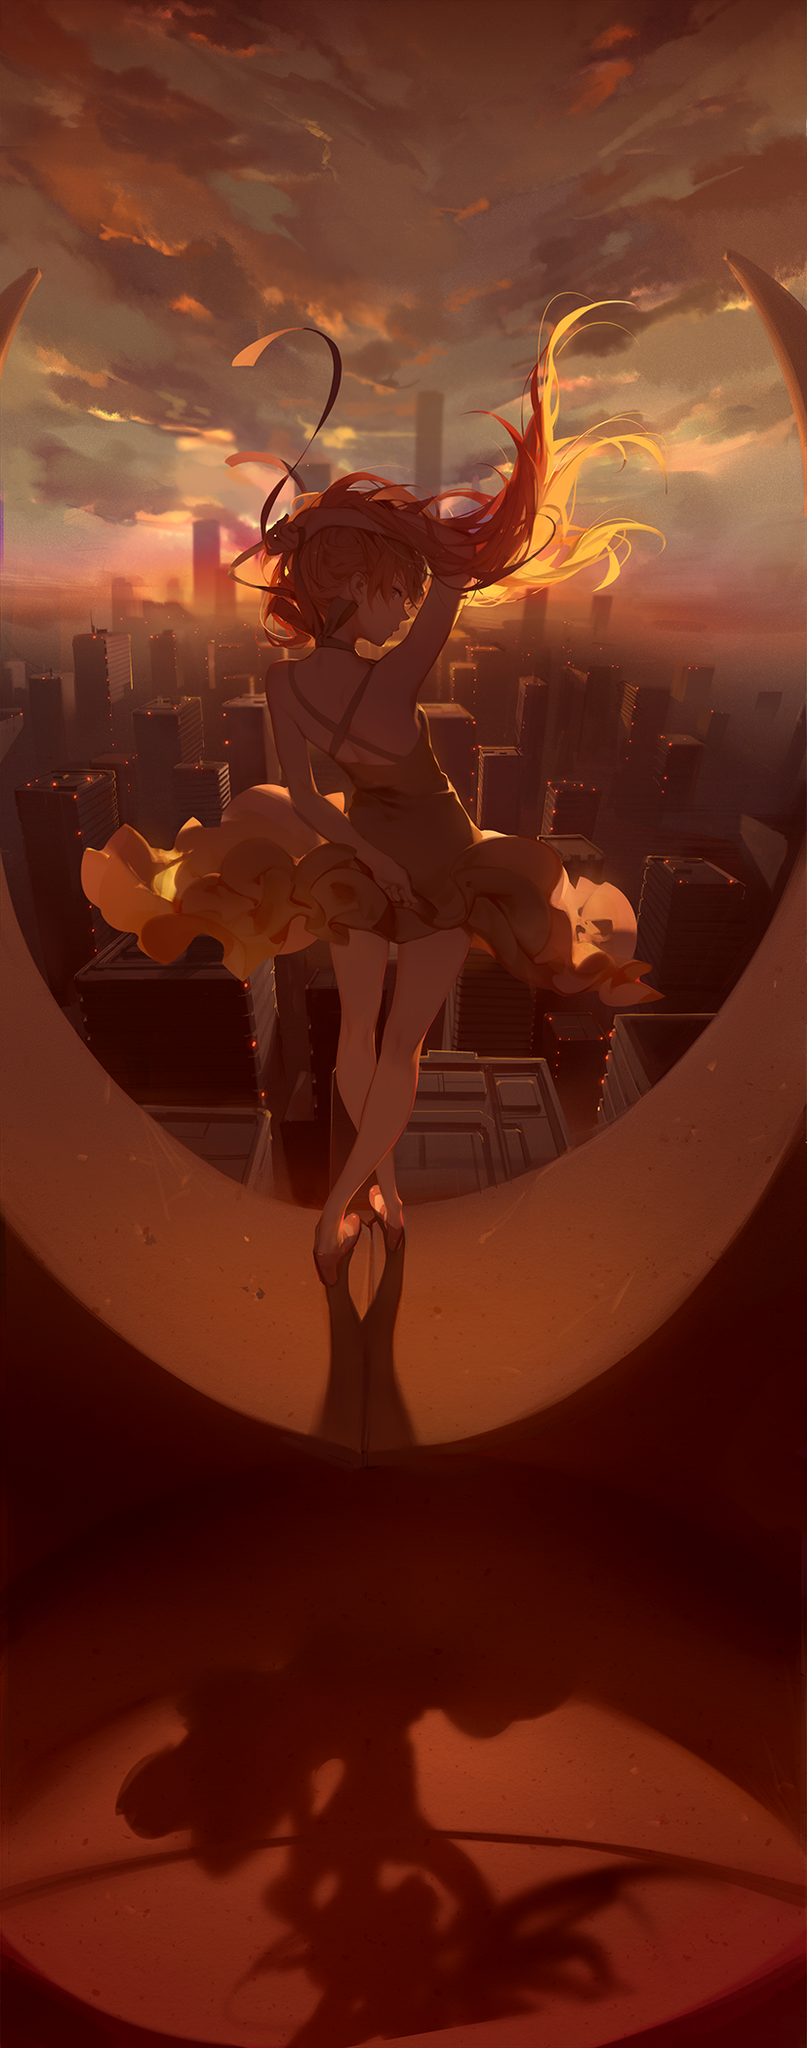 Sunset by ASK